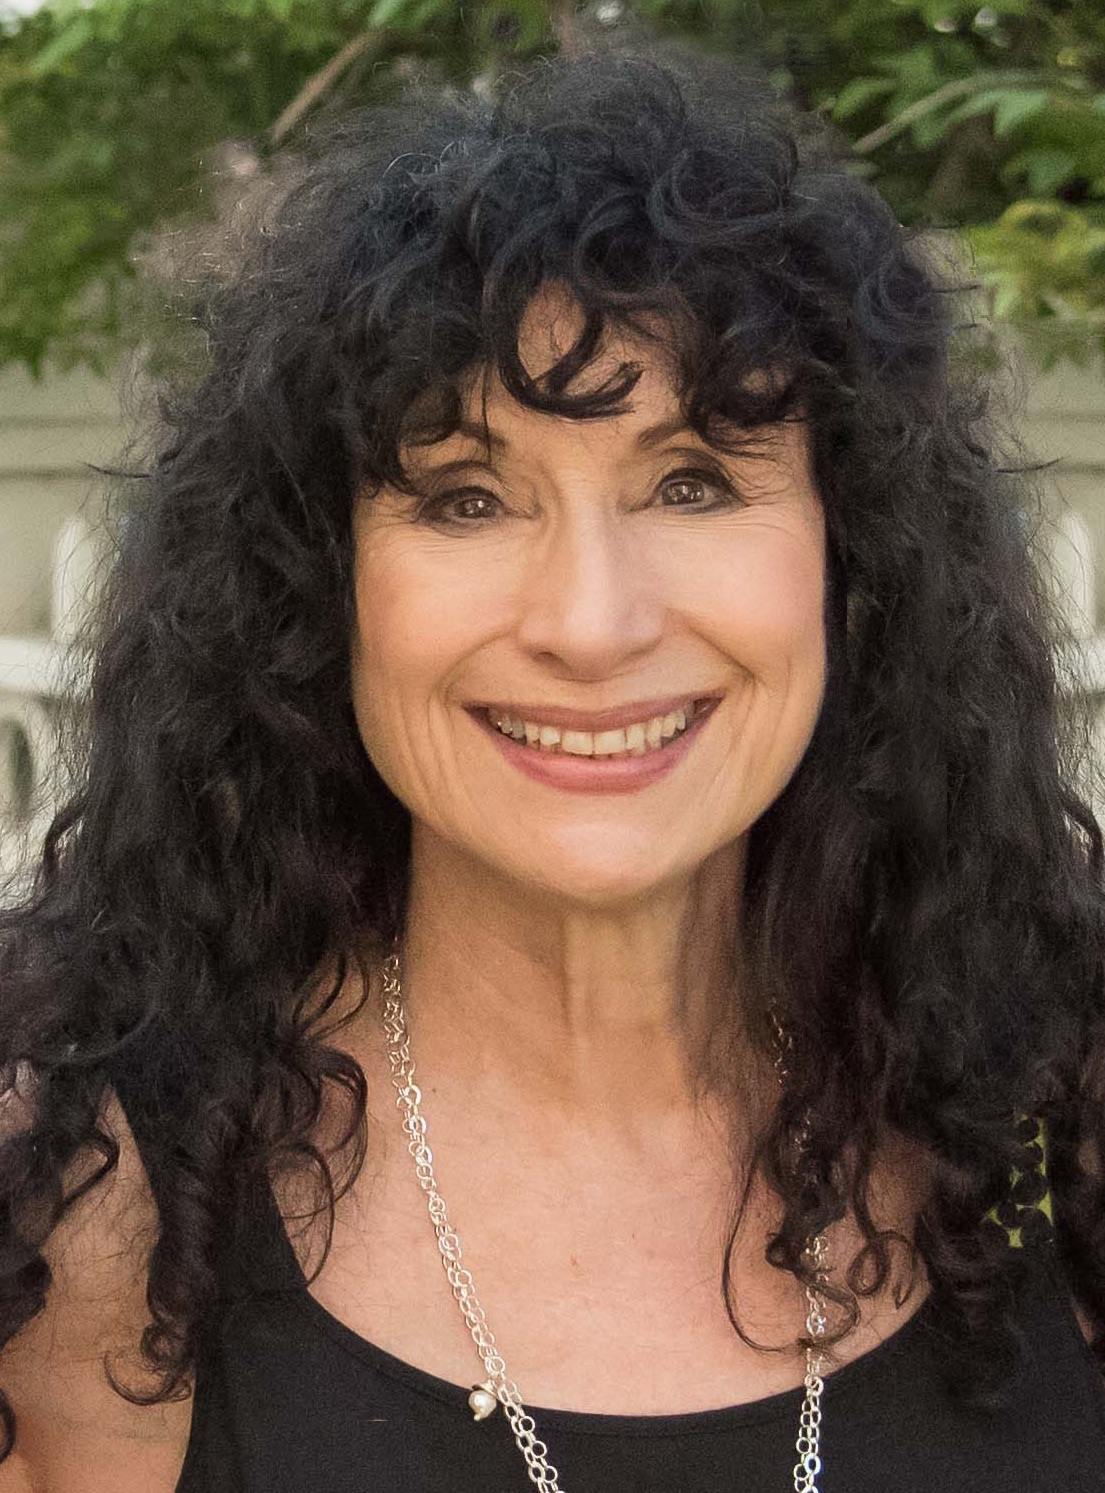 Image of Diane Ackerman